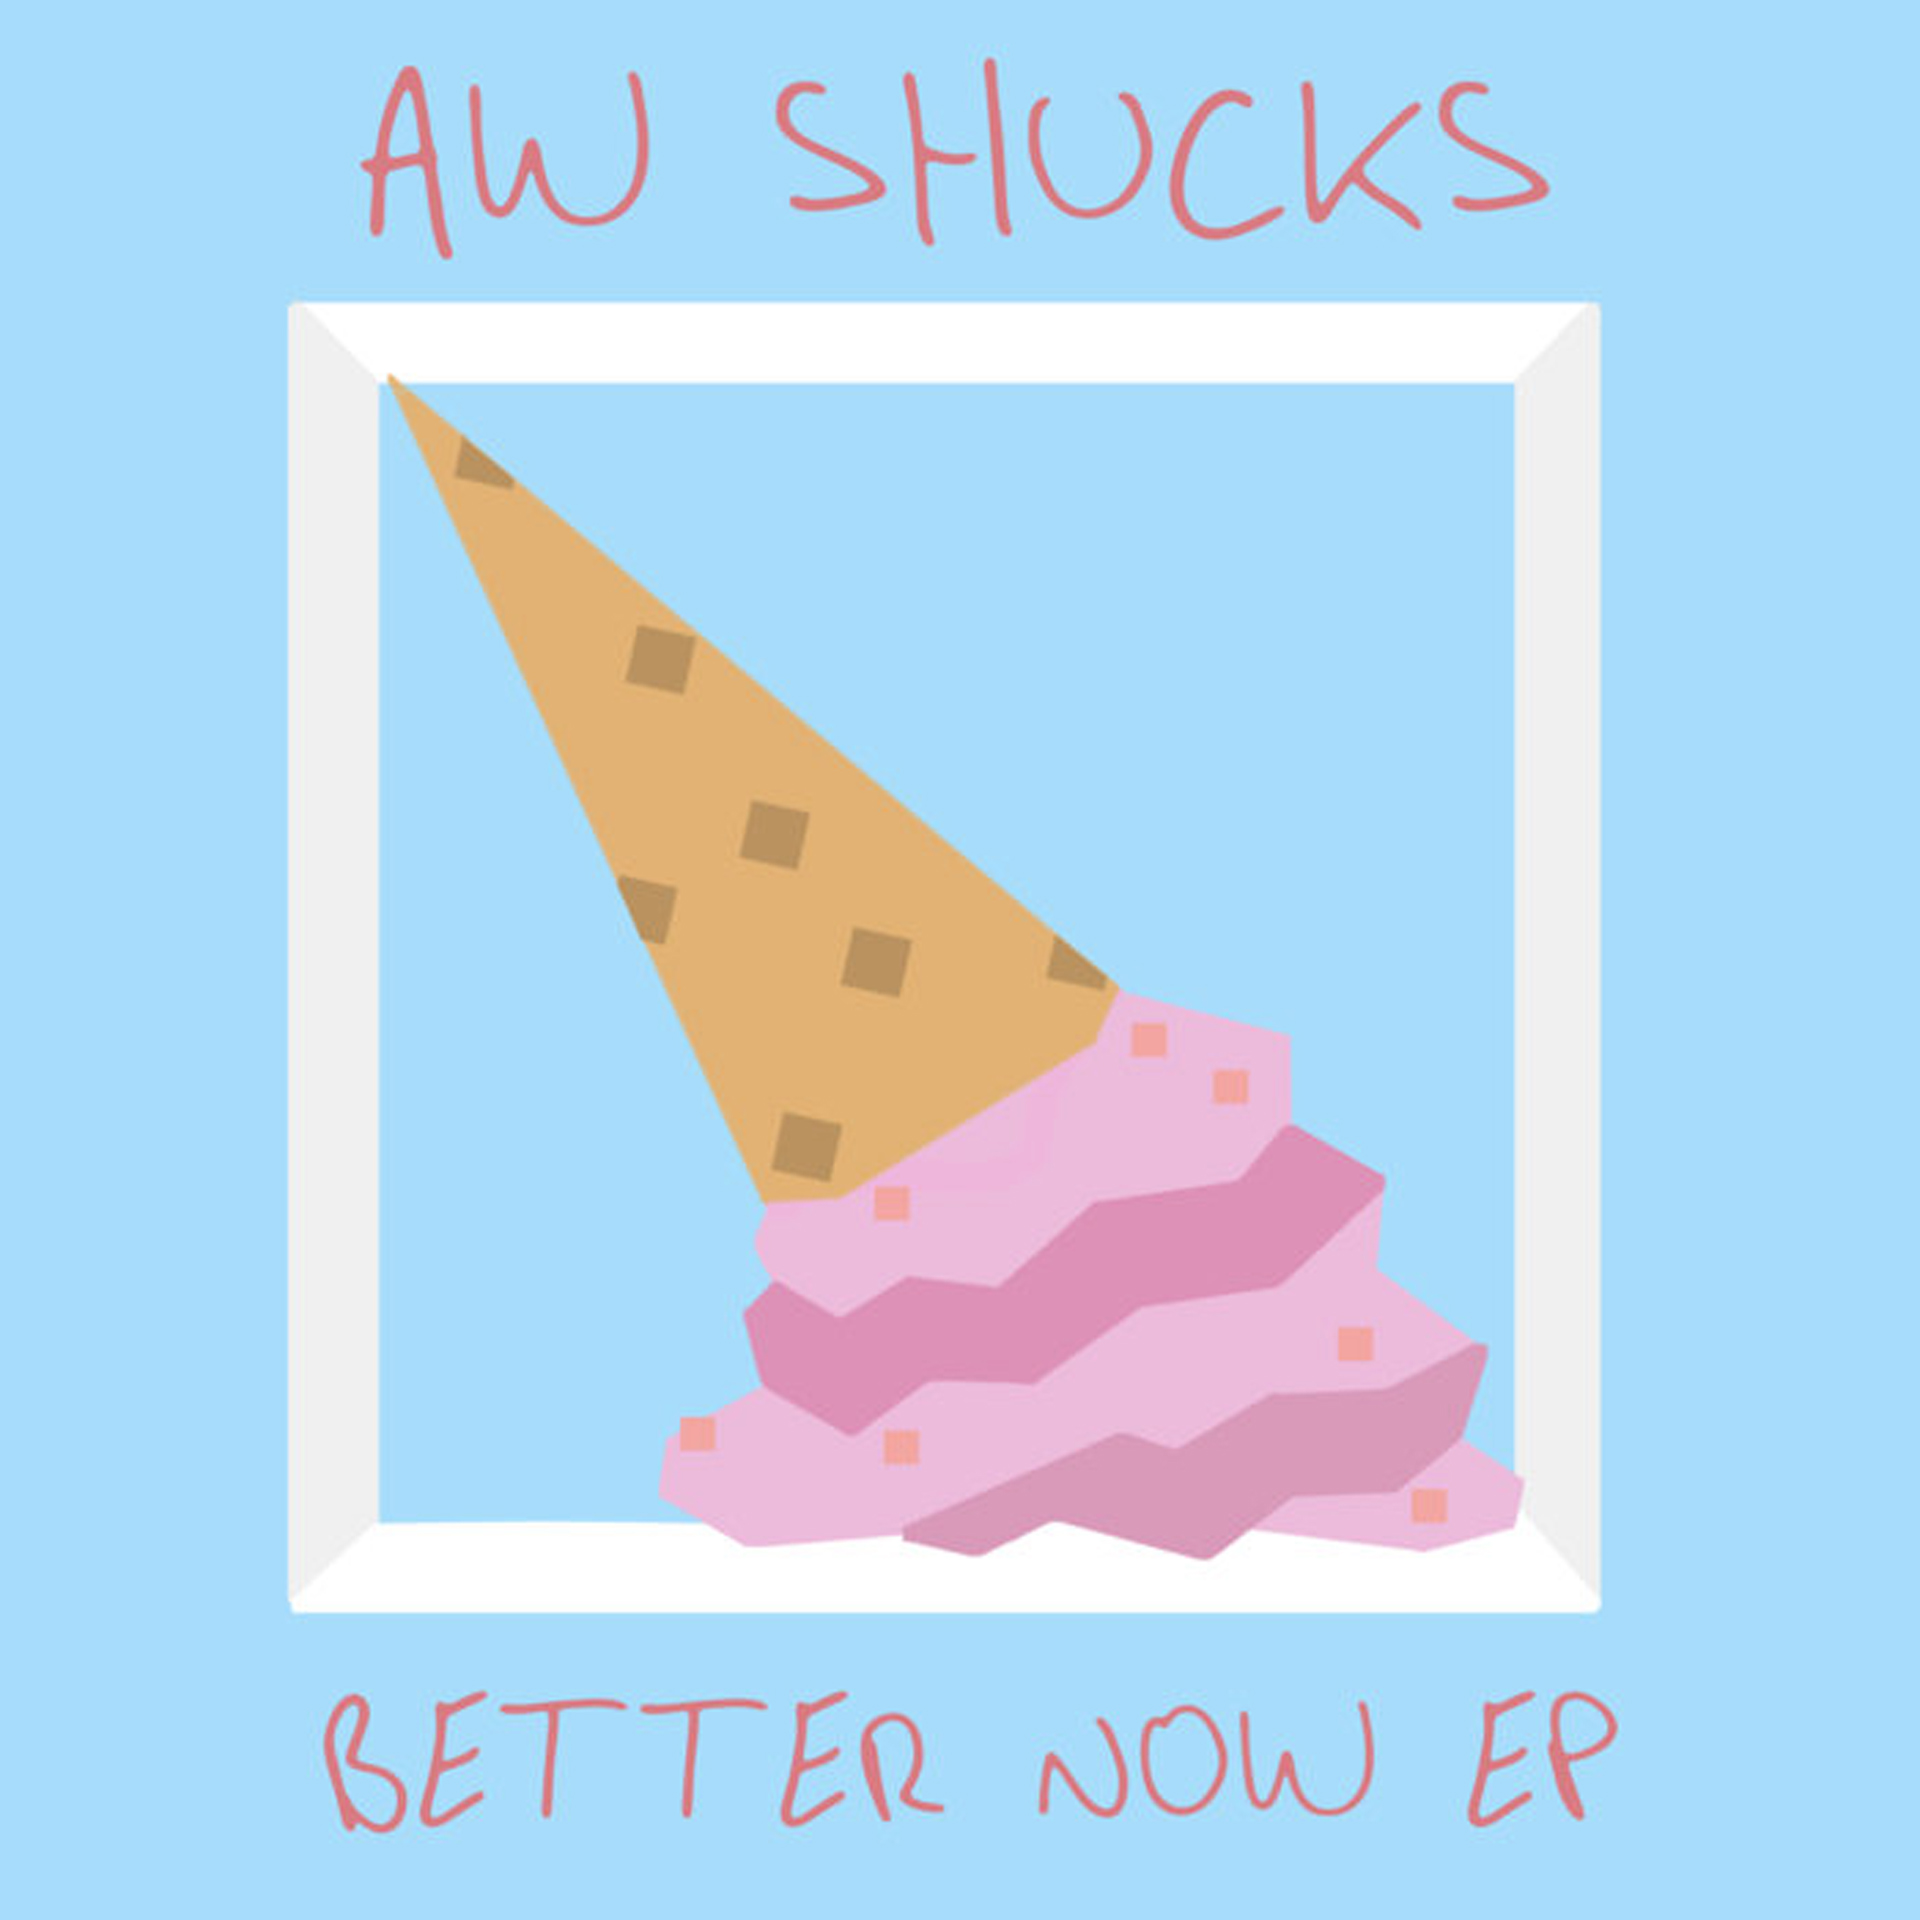 Aw Shucks Better Now EP.jpg